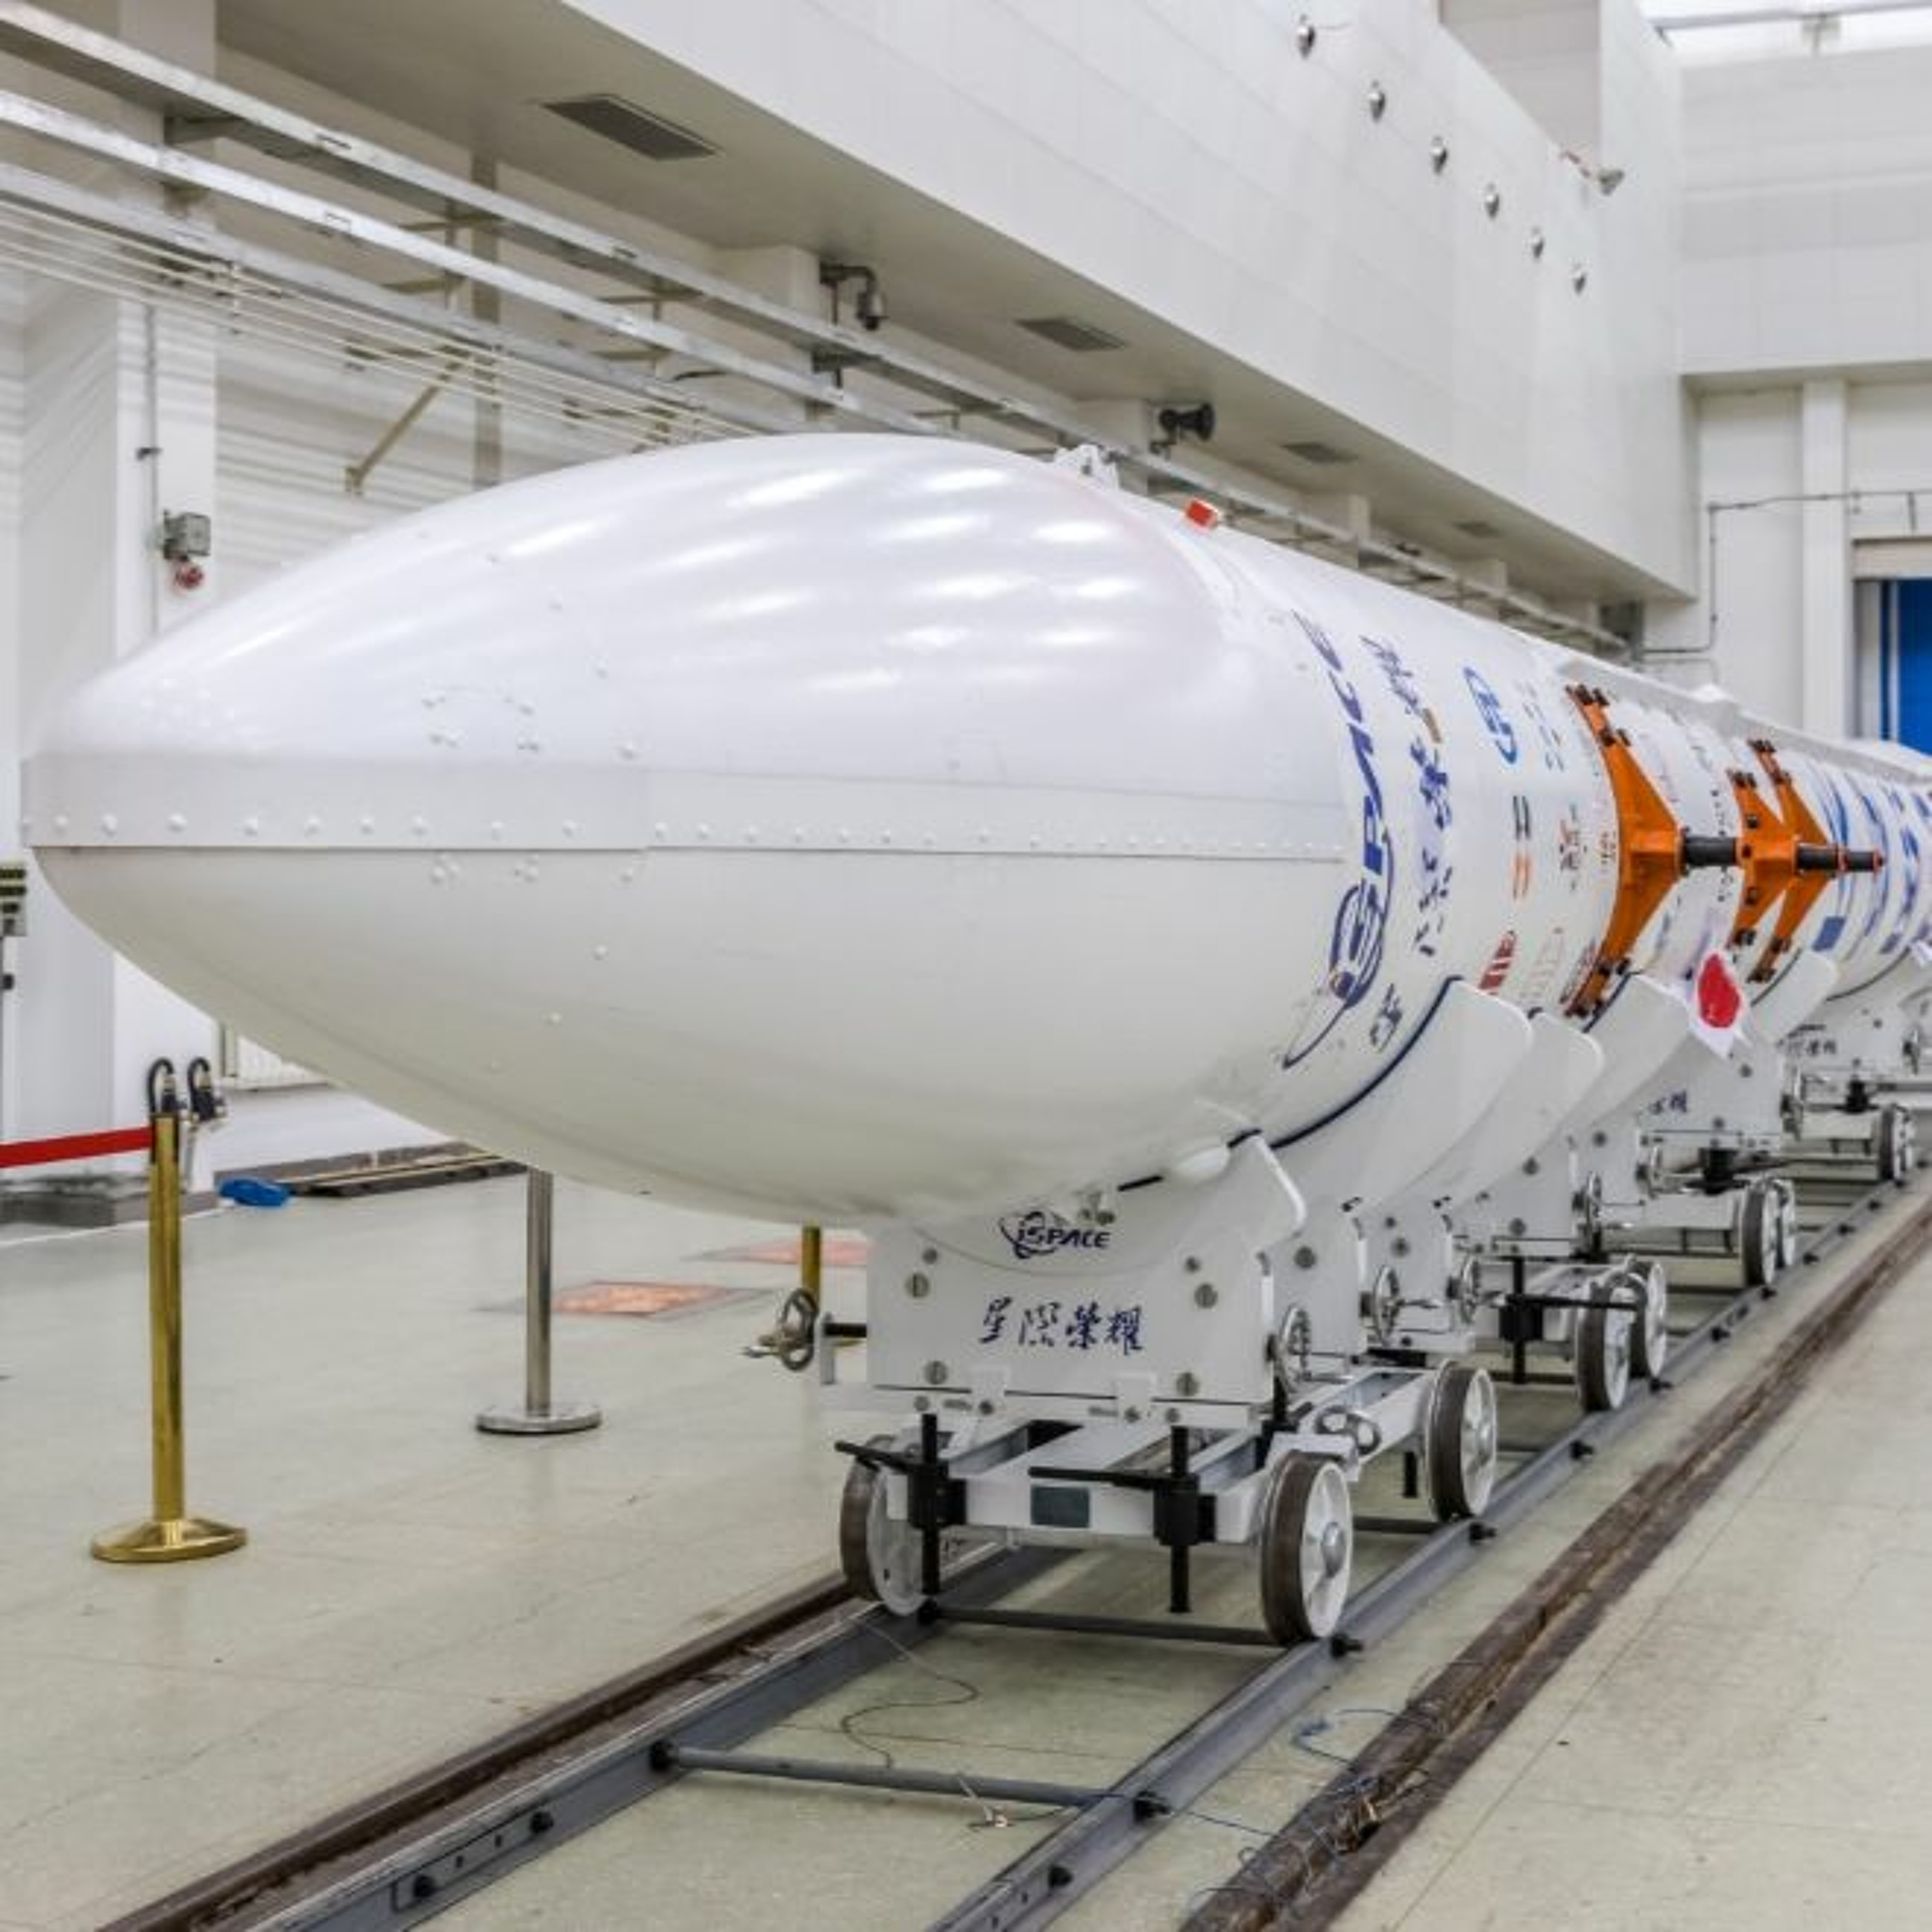 An Update on China's Commercial Space Efforts